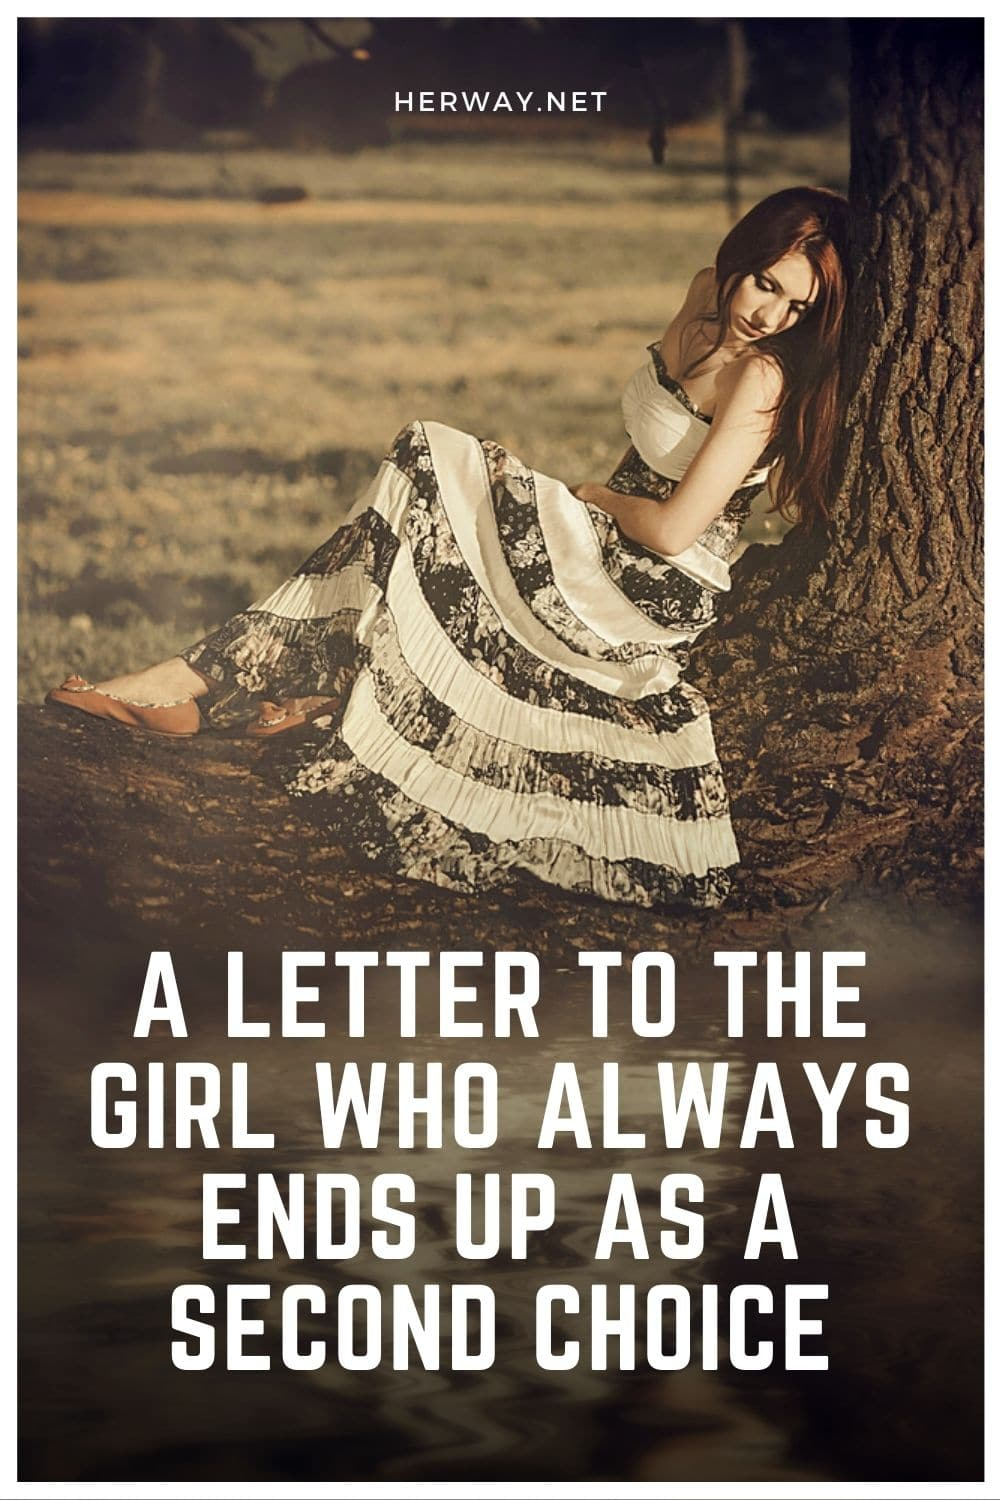 A Letter To The Girl Who Always Ends Up As A Second Choice